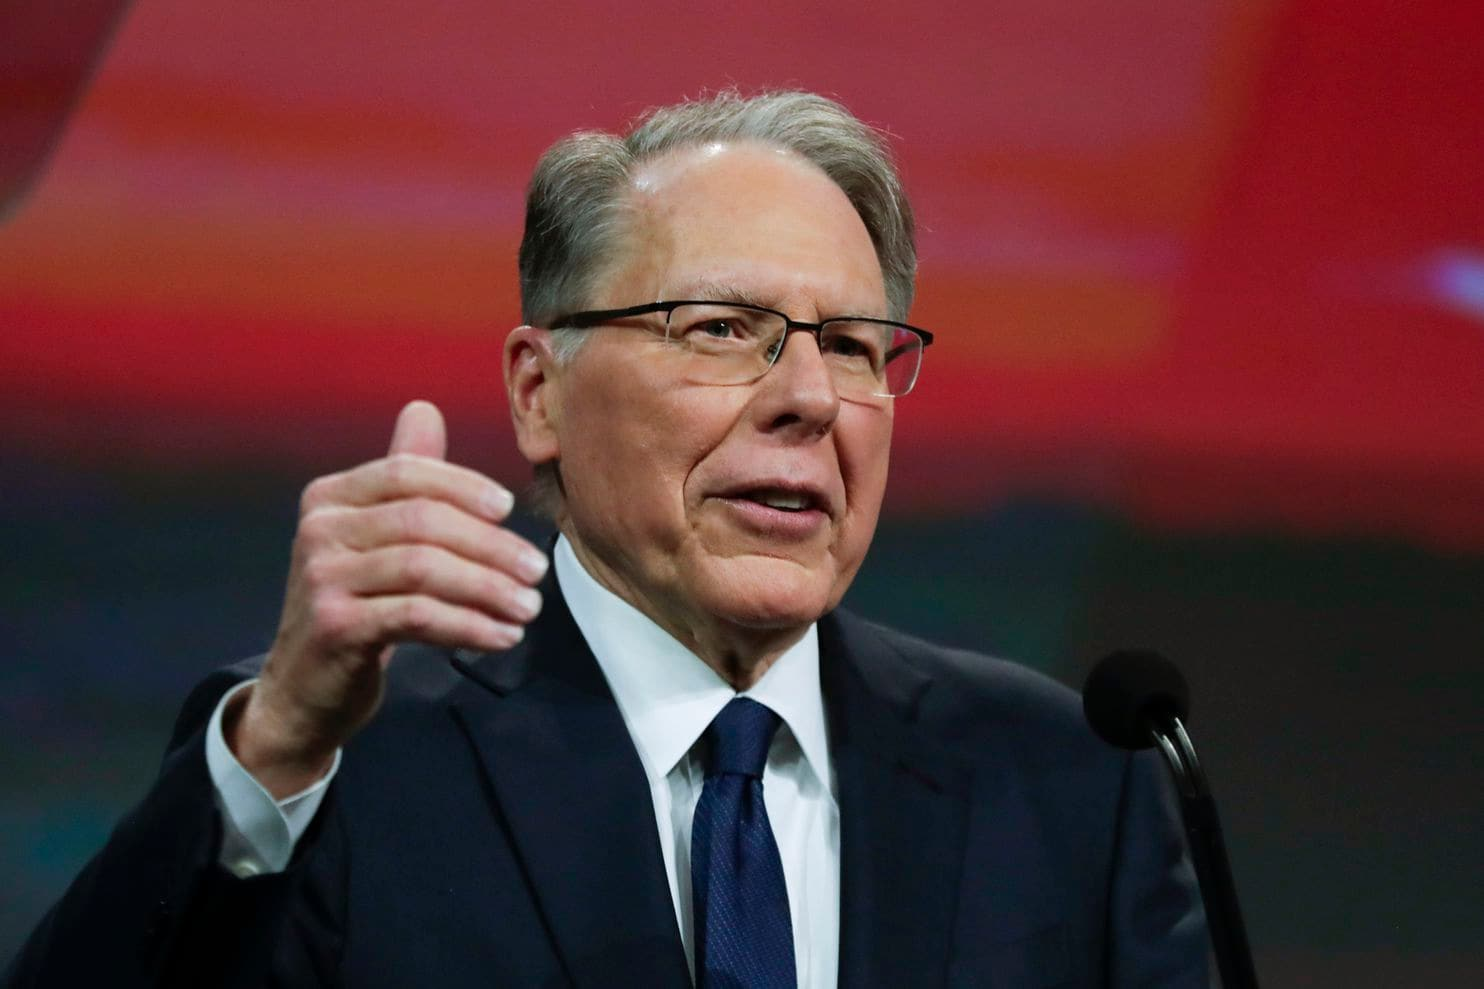 NRA discussed purchasing luxury mansion for its chief executive to use, documents show